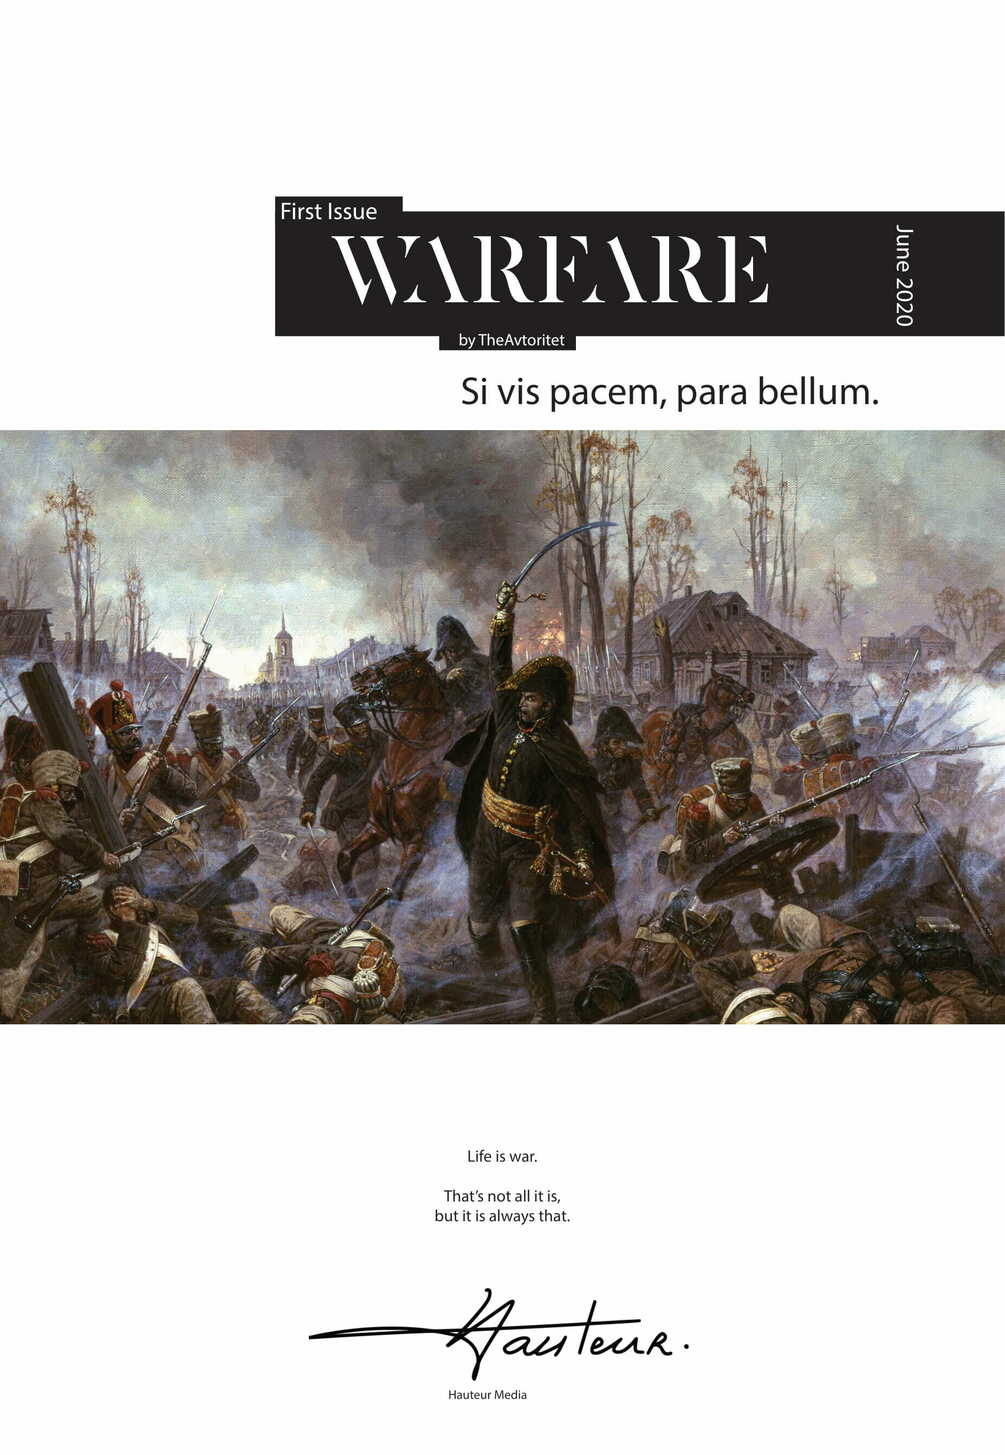 Hauteur Magazine: The First Issue, Warfare — a Fury review